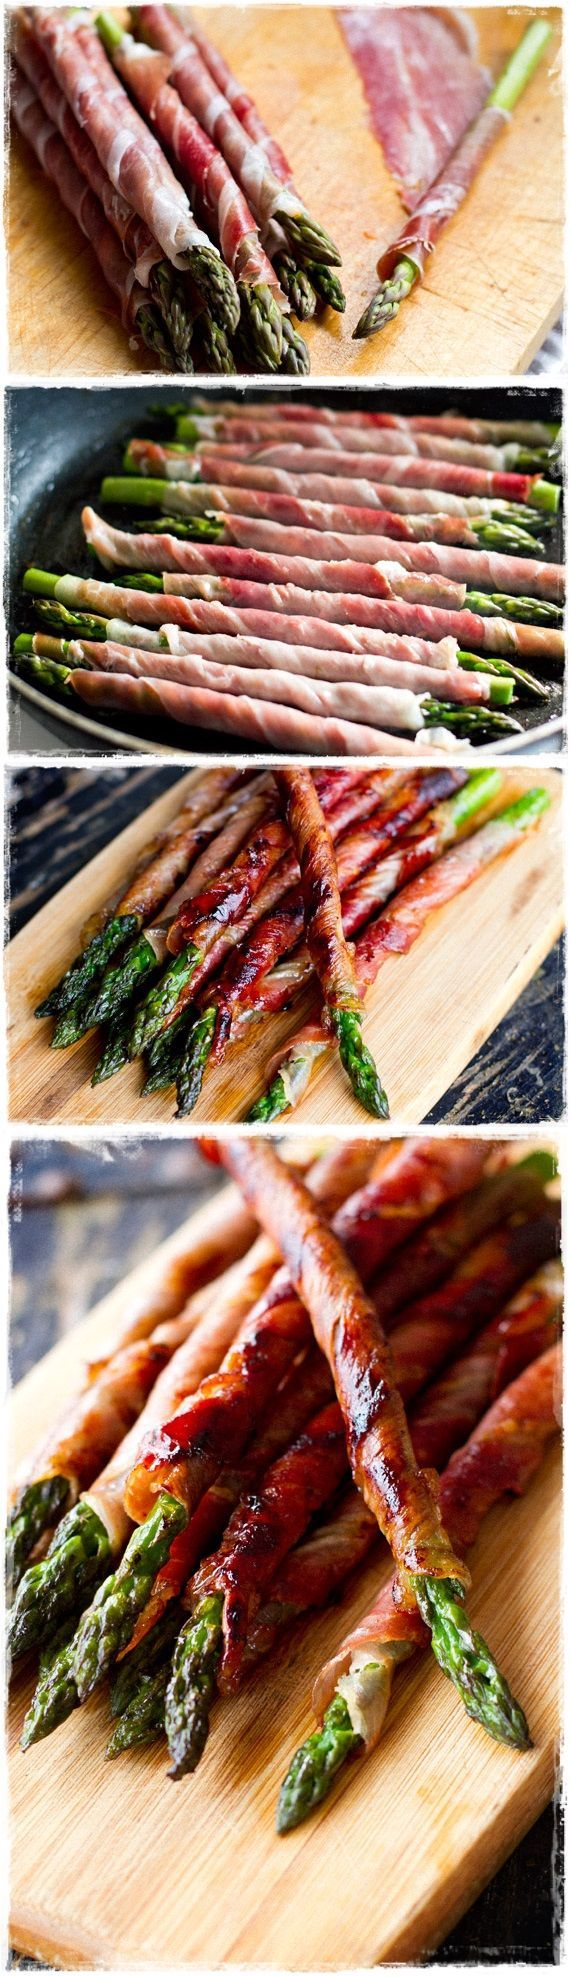 Prosciutto wrapped asparagus has been everywhere lately, and I am not complaining